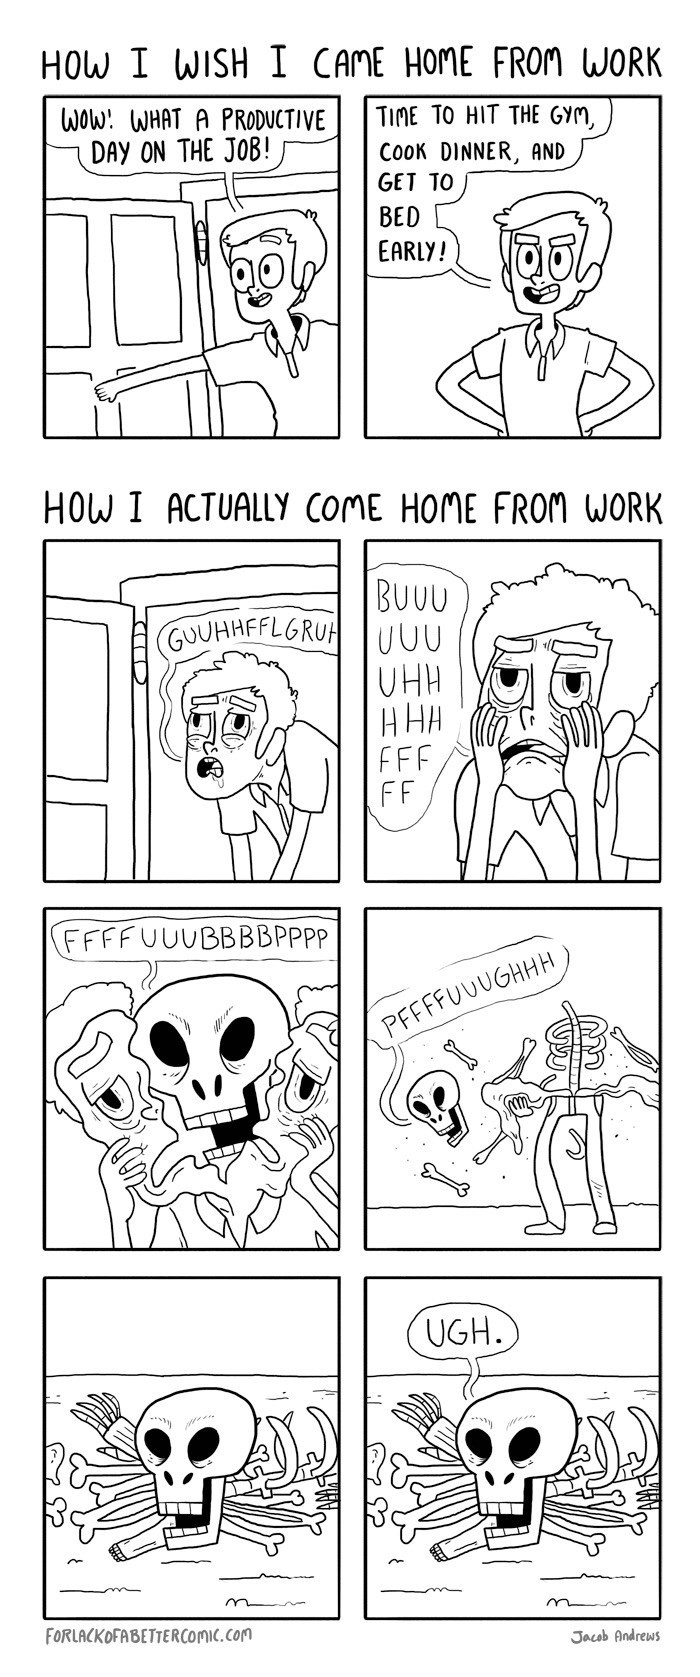 comic about wanting to be productive after returning home from work but in reality falling apart in exhaustion